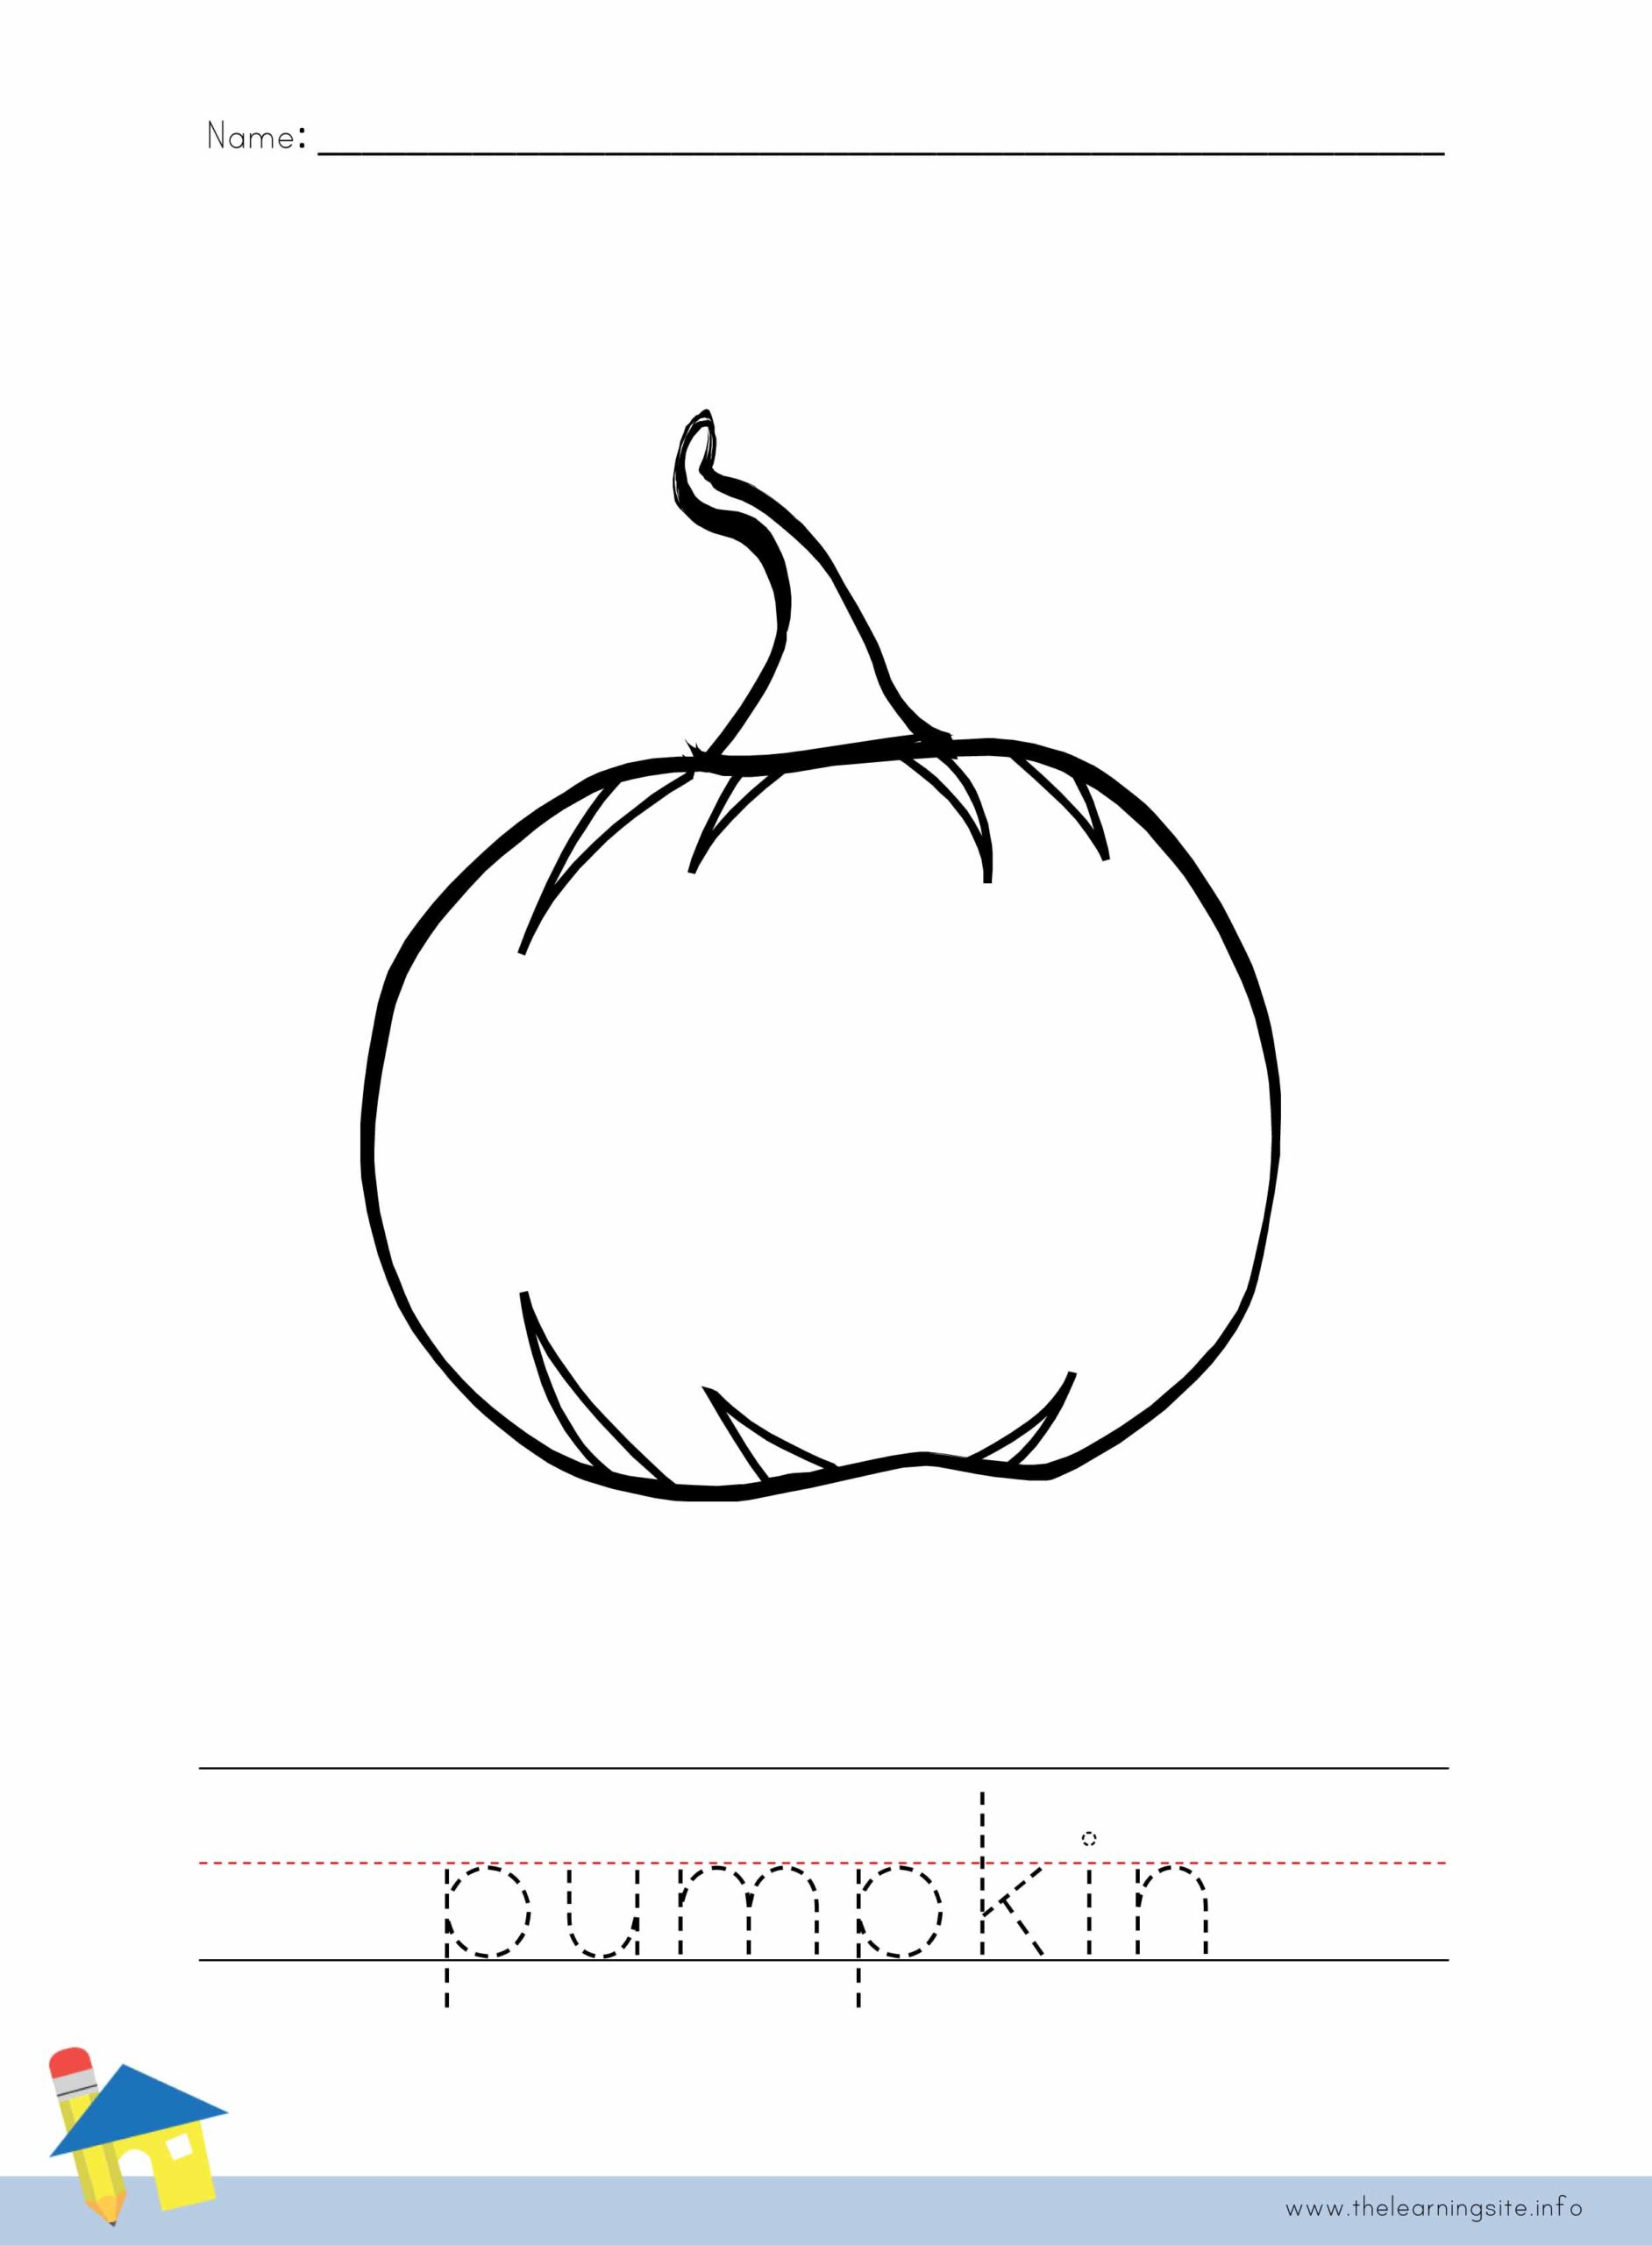 Pumpkin Coloring Worksheet The Learning Site